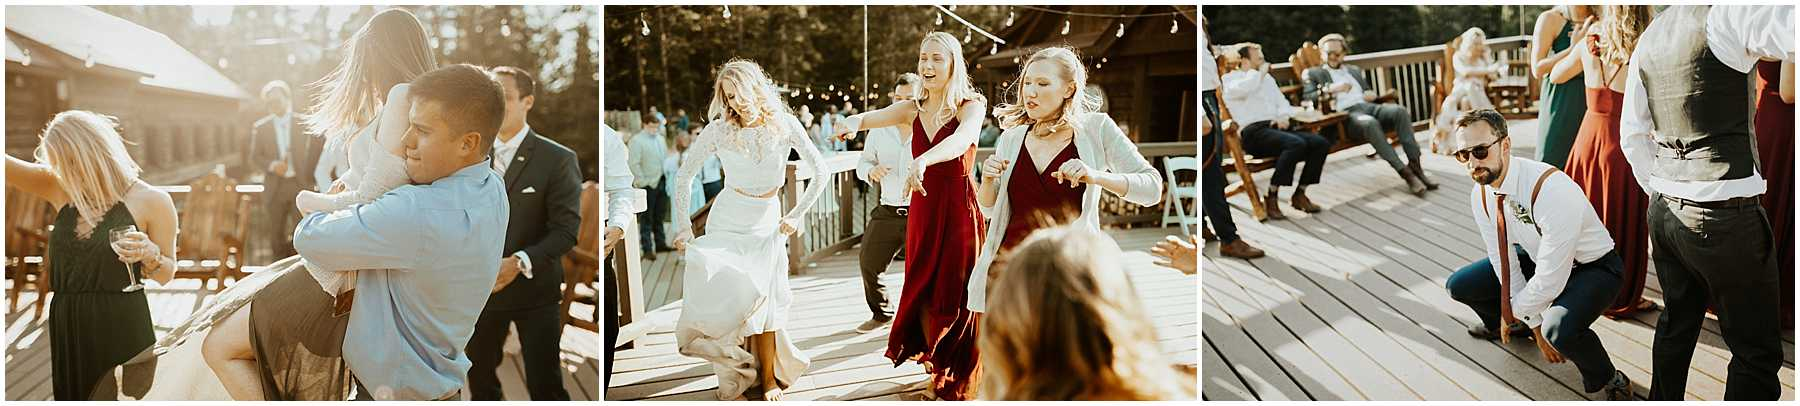 crested_butte_intimate_wedding_colorado_0109.jpg